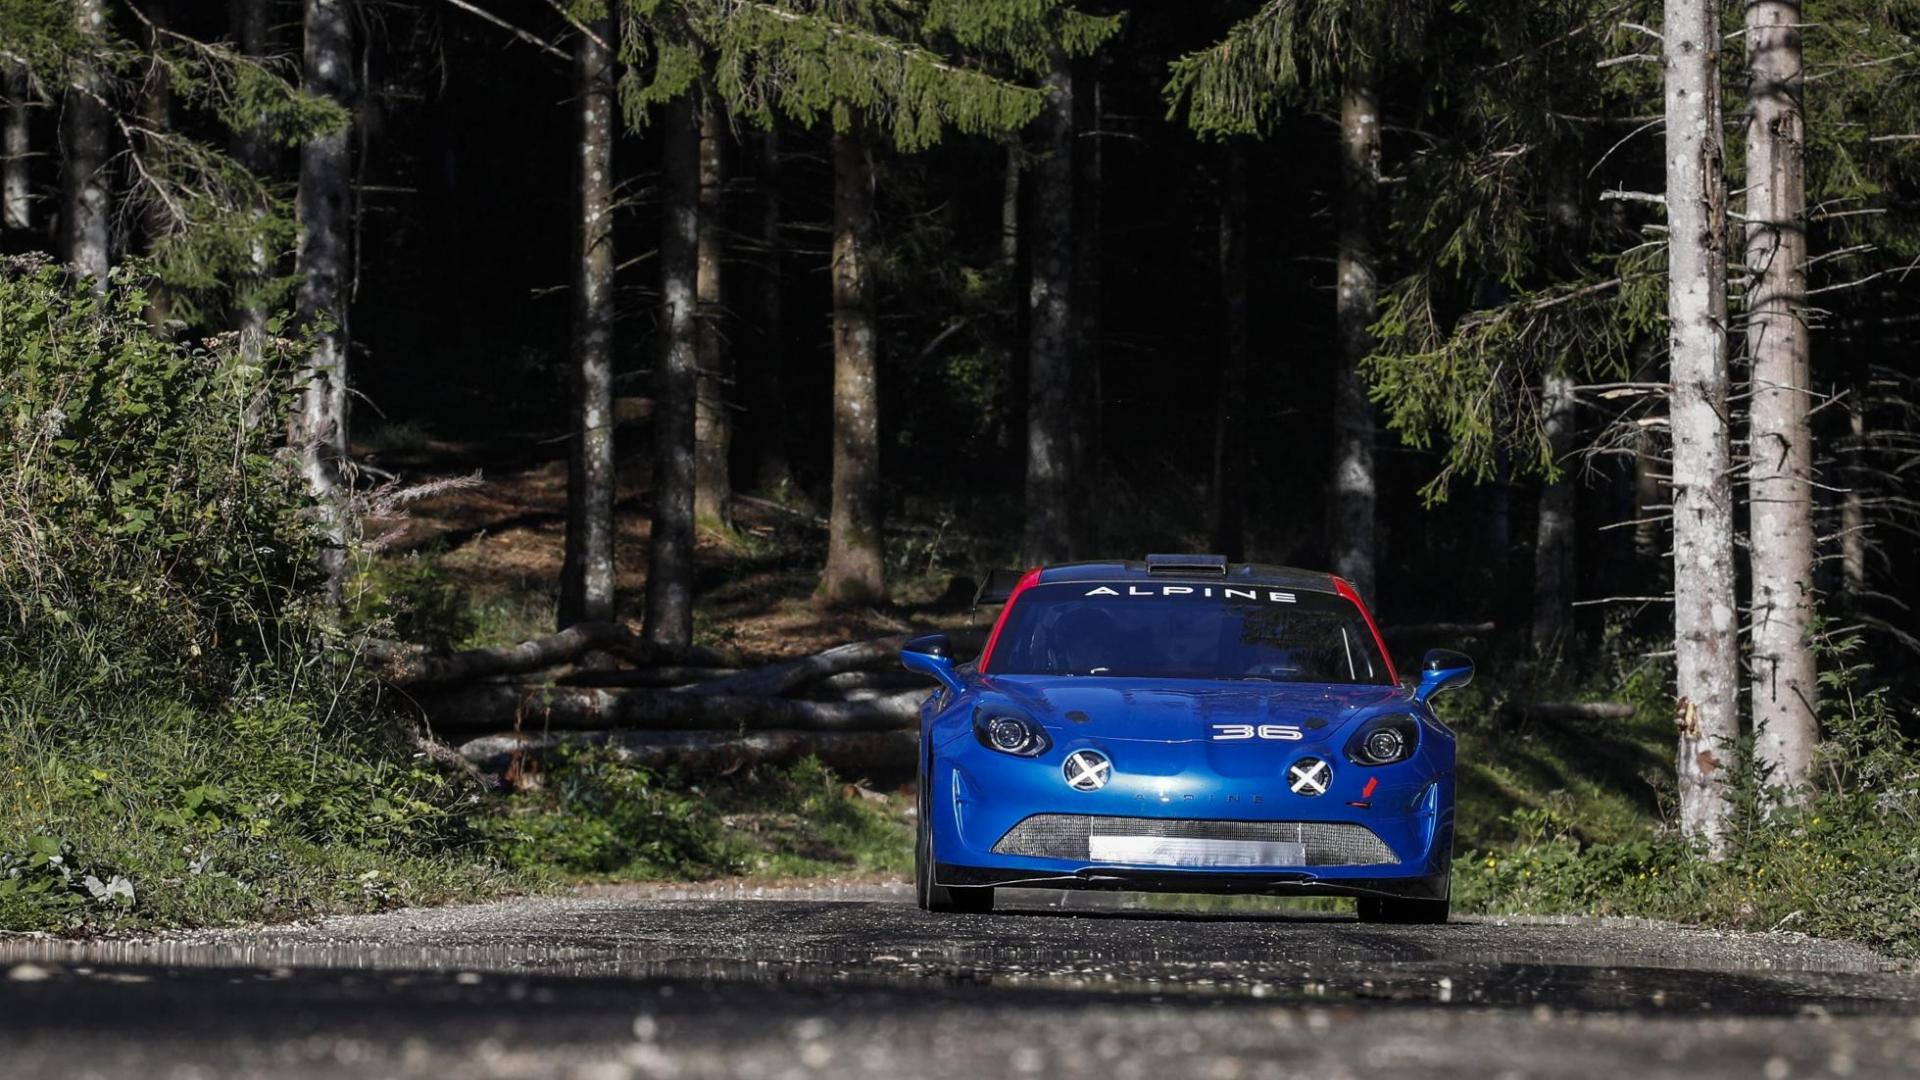 the_alpine_a110_rally_ready_to_enter_the_scene_060919_24